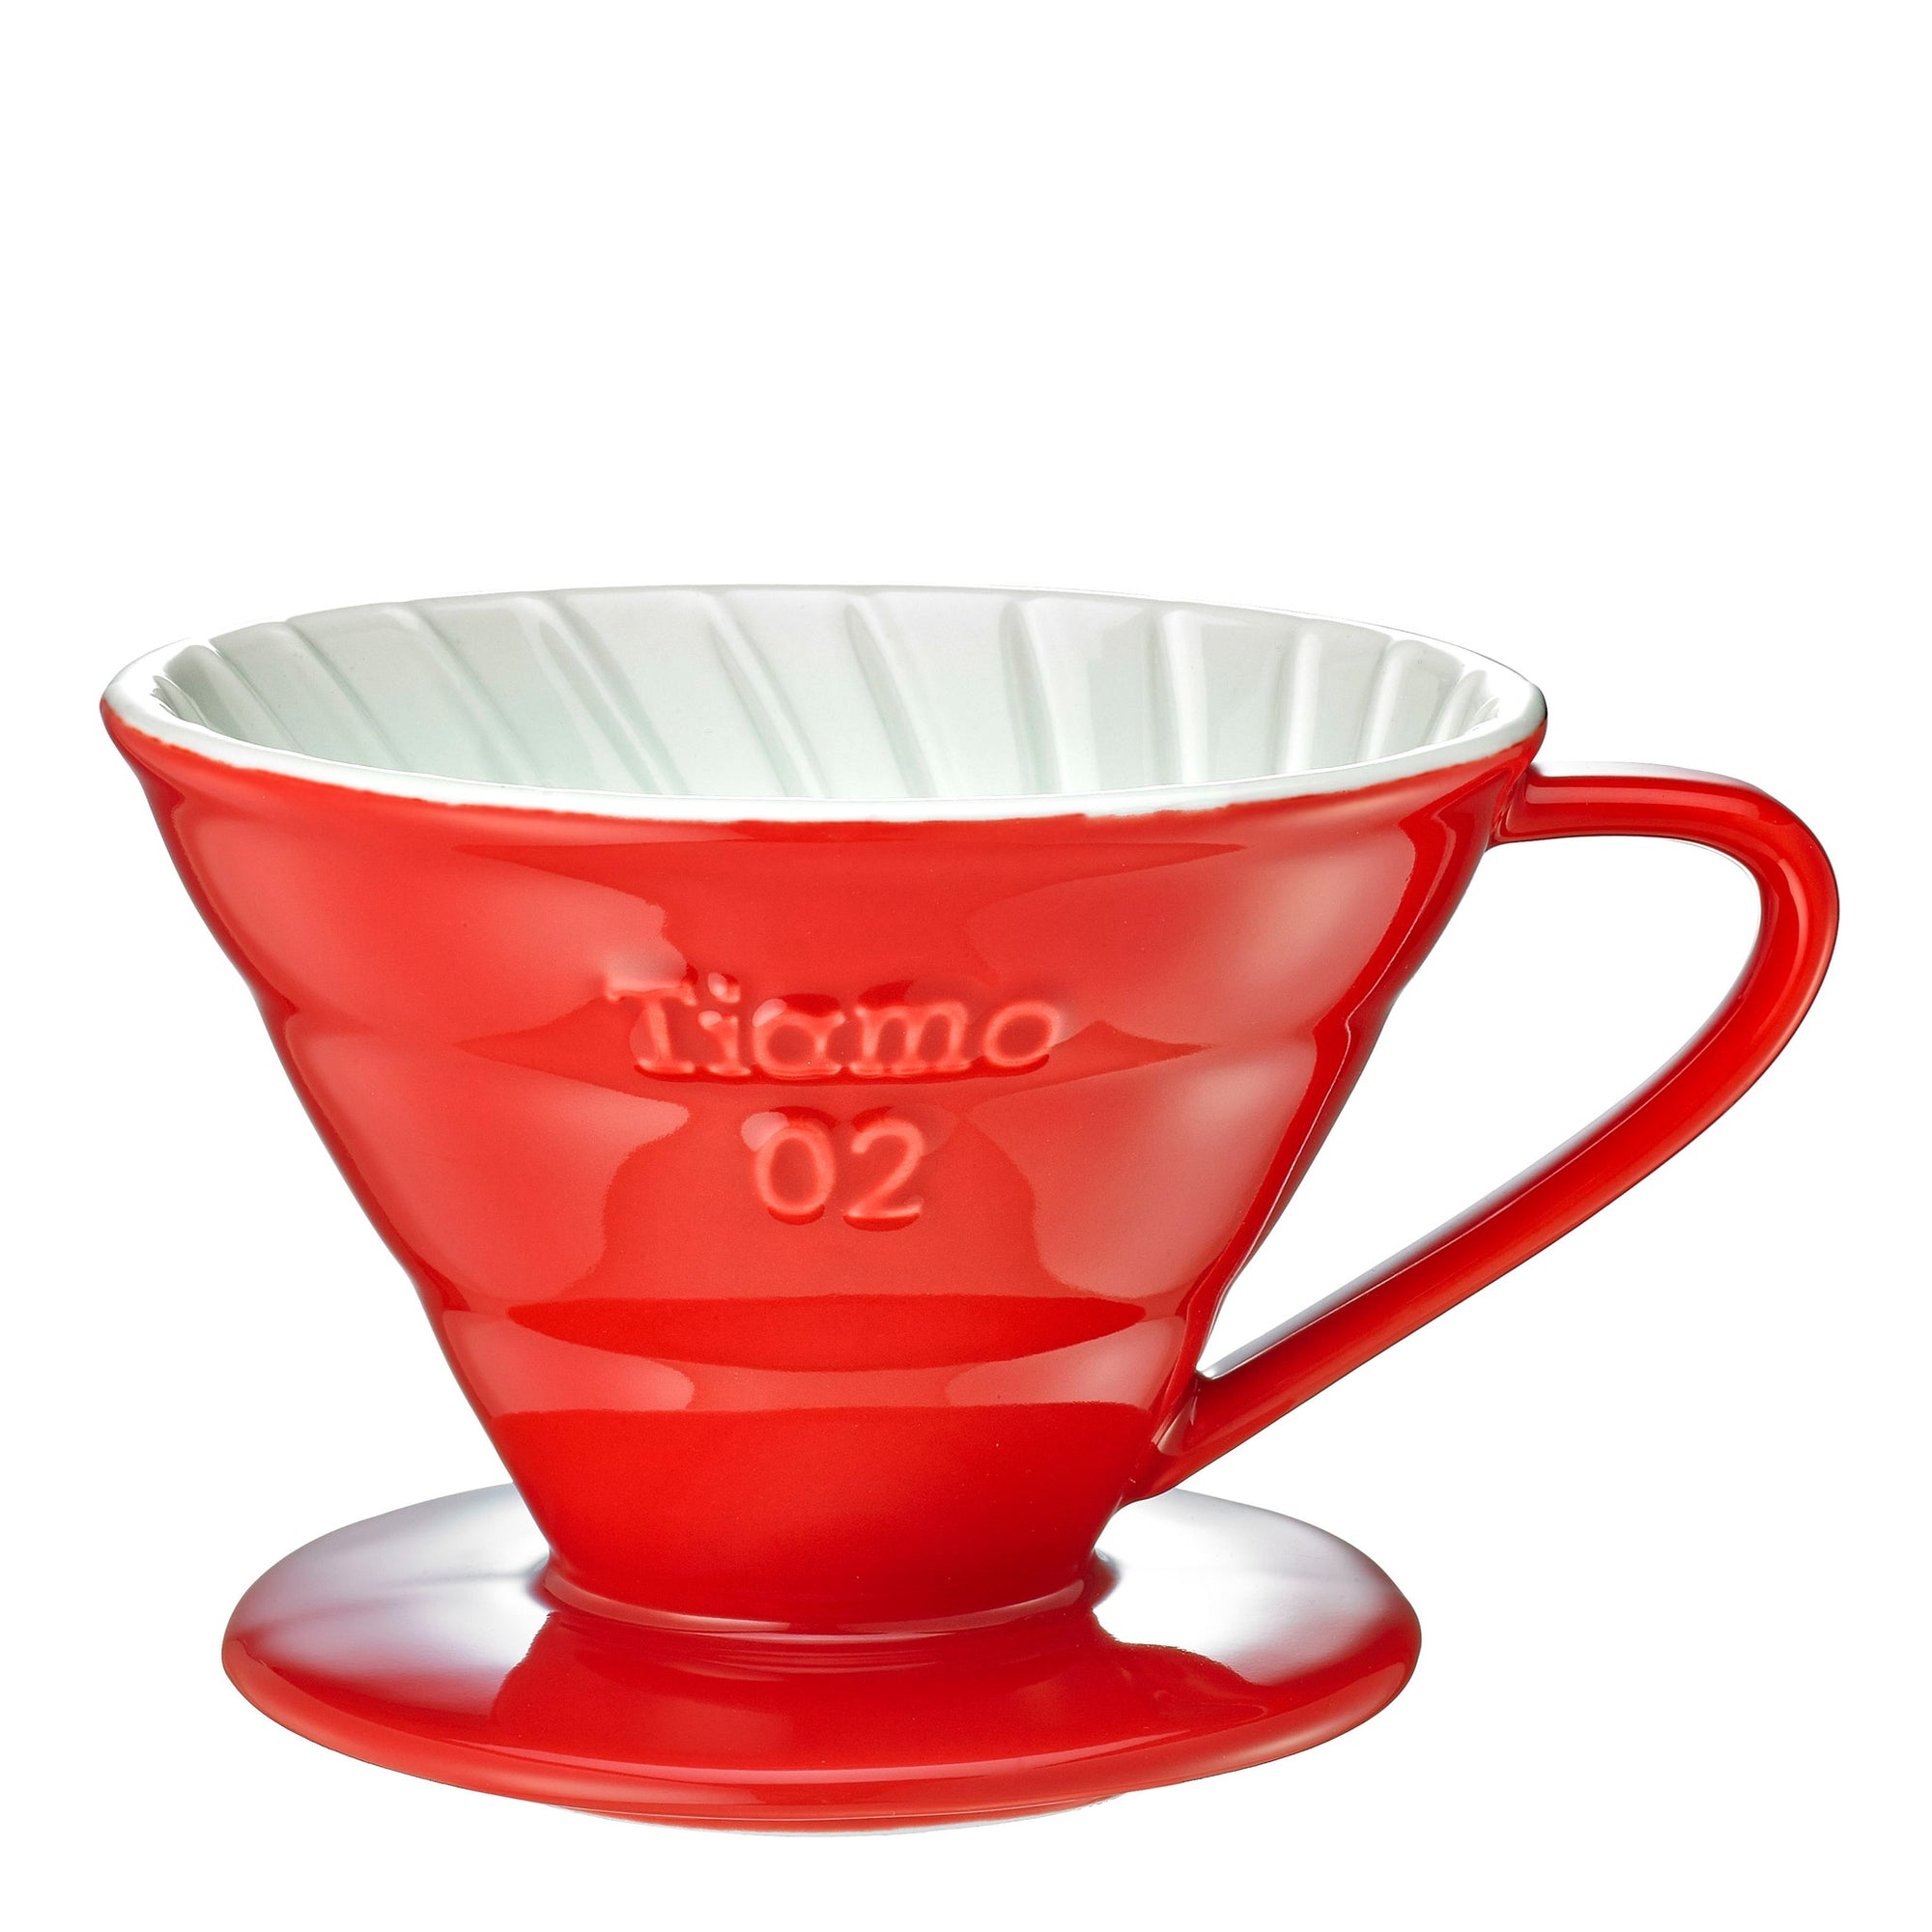 Tiamo V02 Ceramic Filter - Red - Espresso Gear